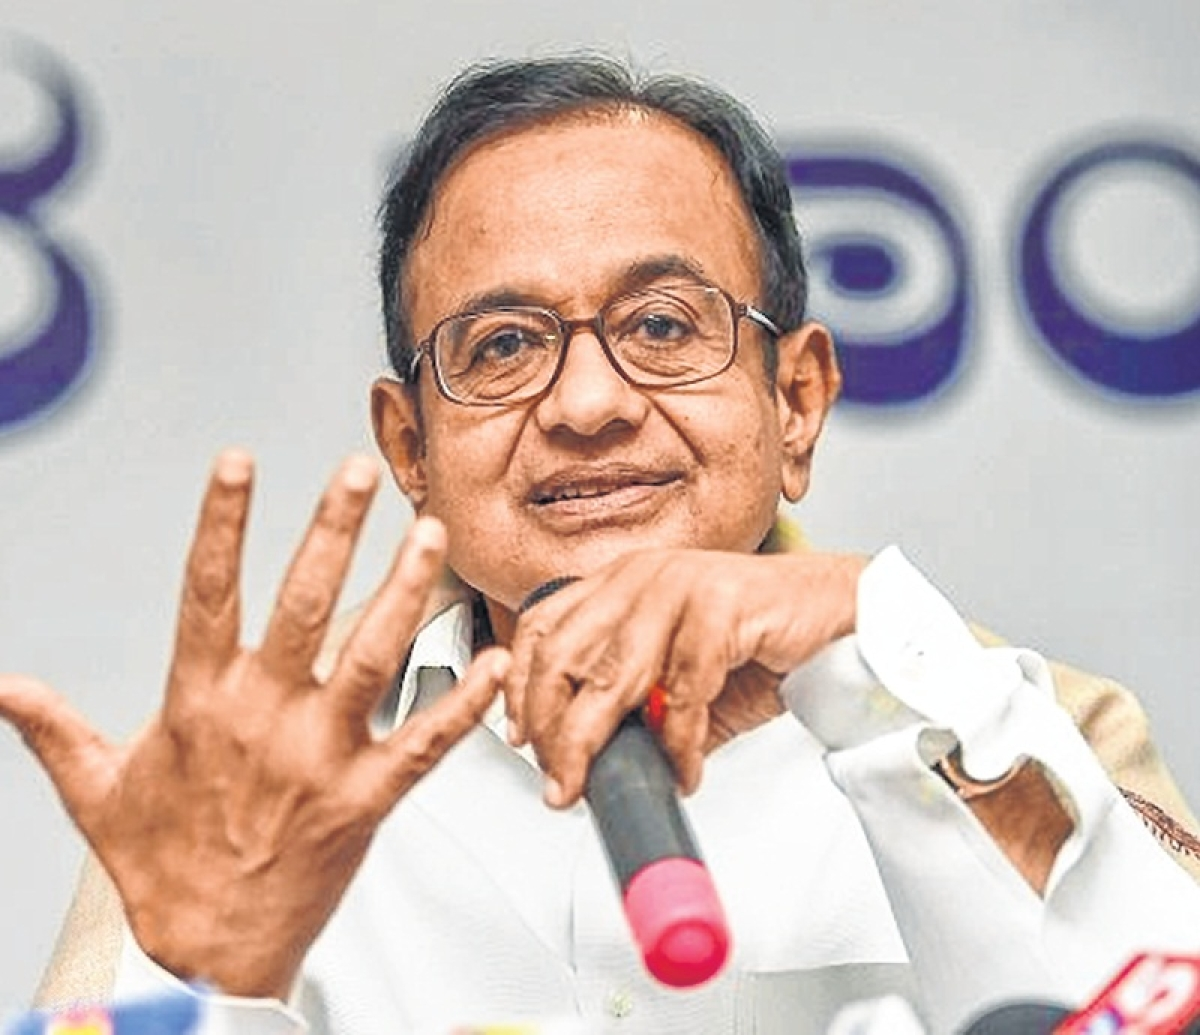 Election Commission failing country, reluctant to act against Narendra Modi: P Chidambaram